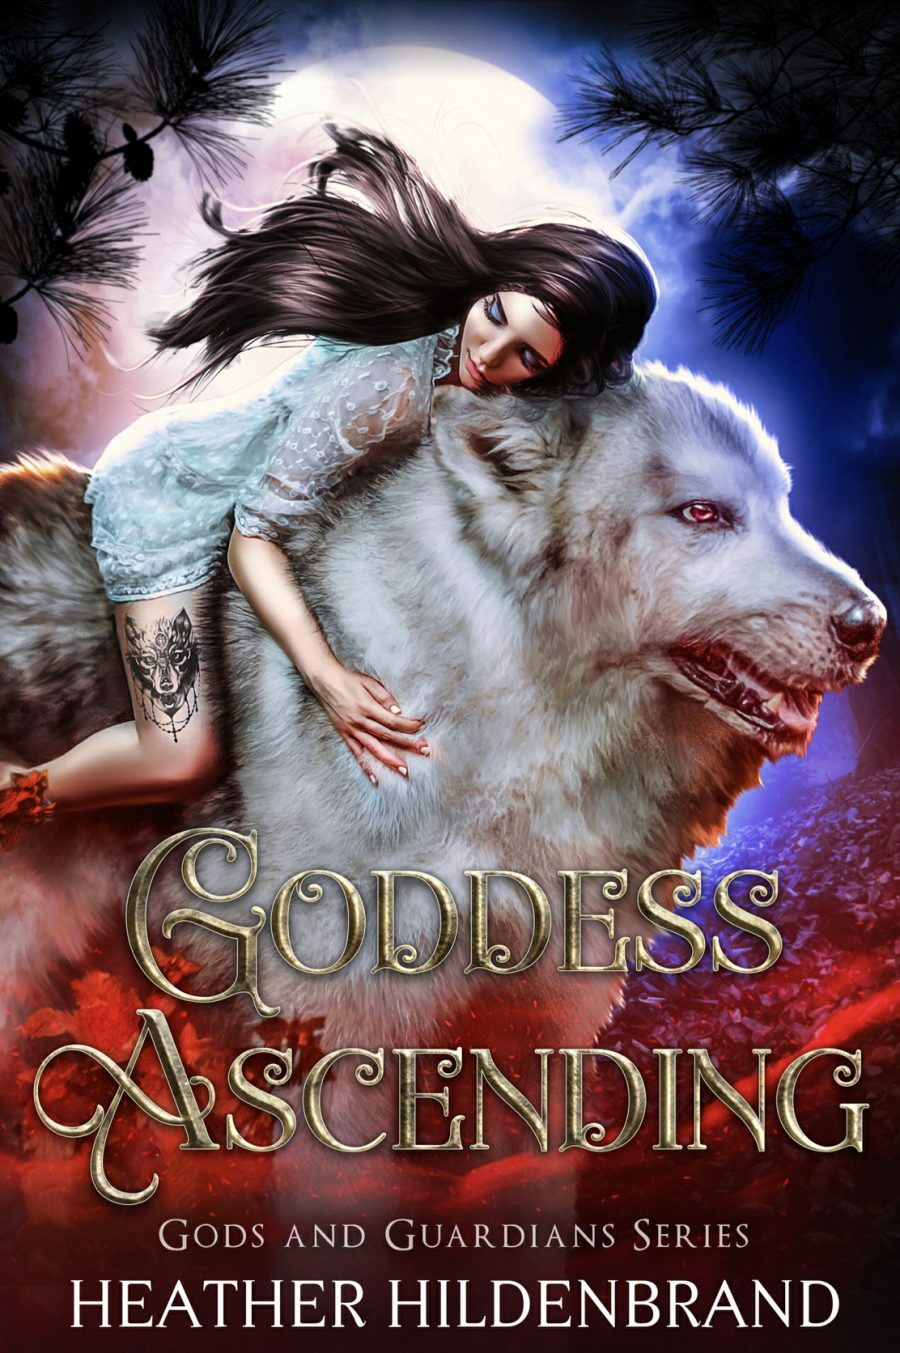 Goddess Ascending by Heather Hildenbrand - A Book Review #BookReview #Fantasy #YA #SlowBurn #RH #ReverseHarem #KindleUnlimited #3Stars #KU